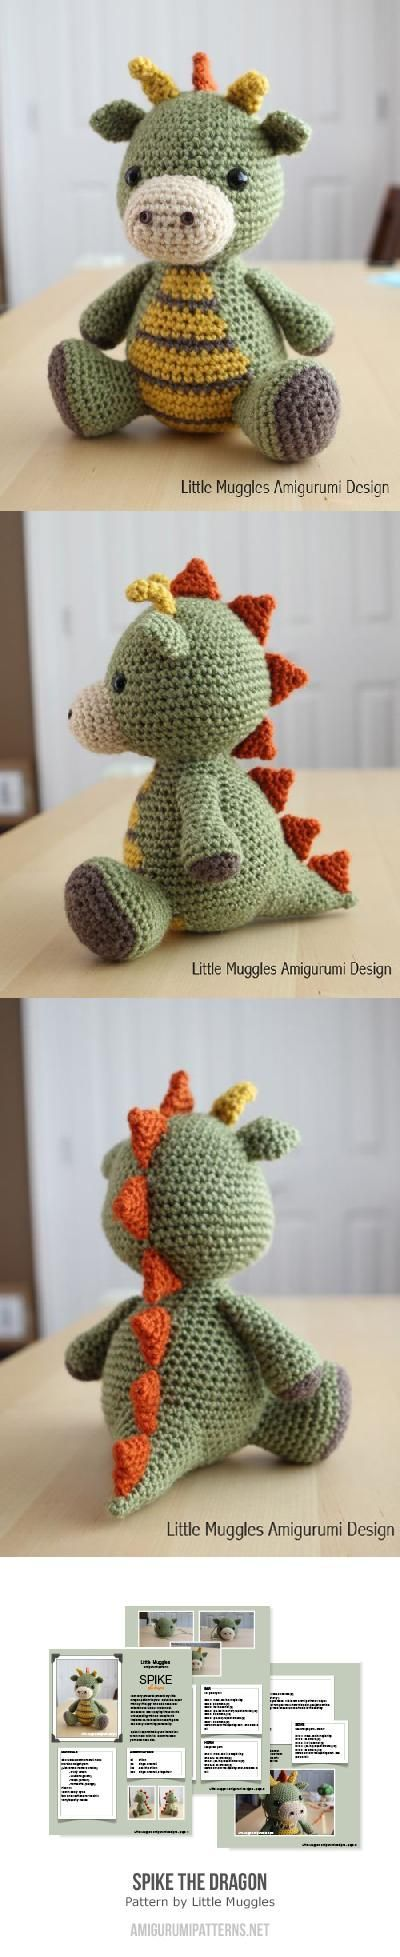 Dragon pattern, Dragon and Amigurumi patterns on Pinterest